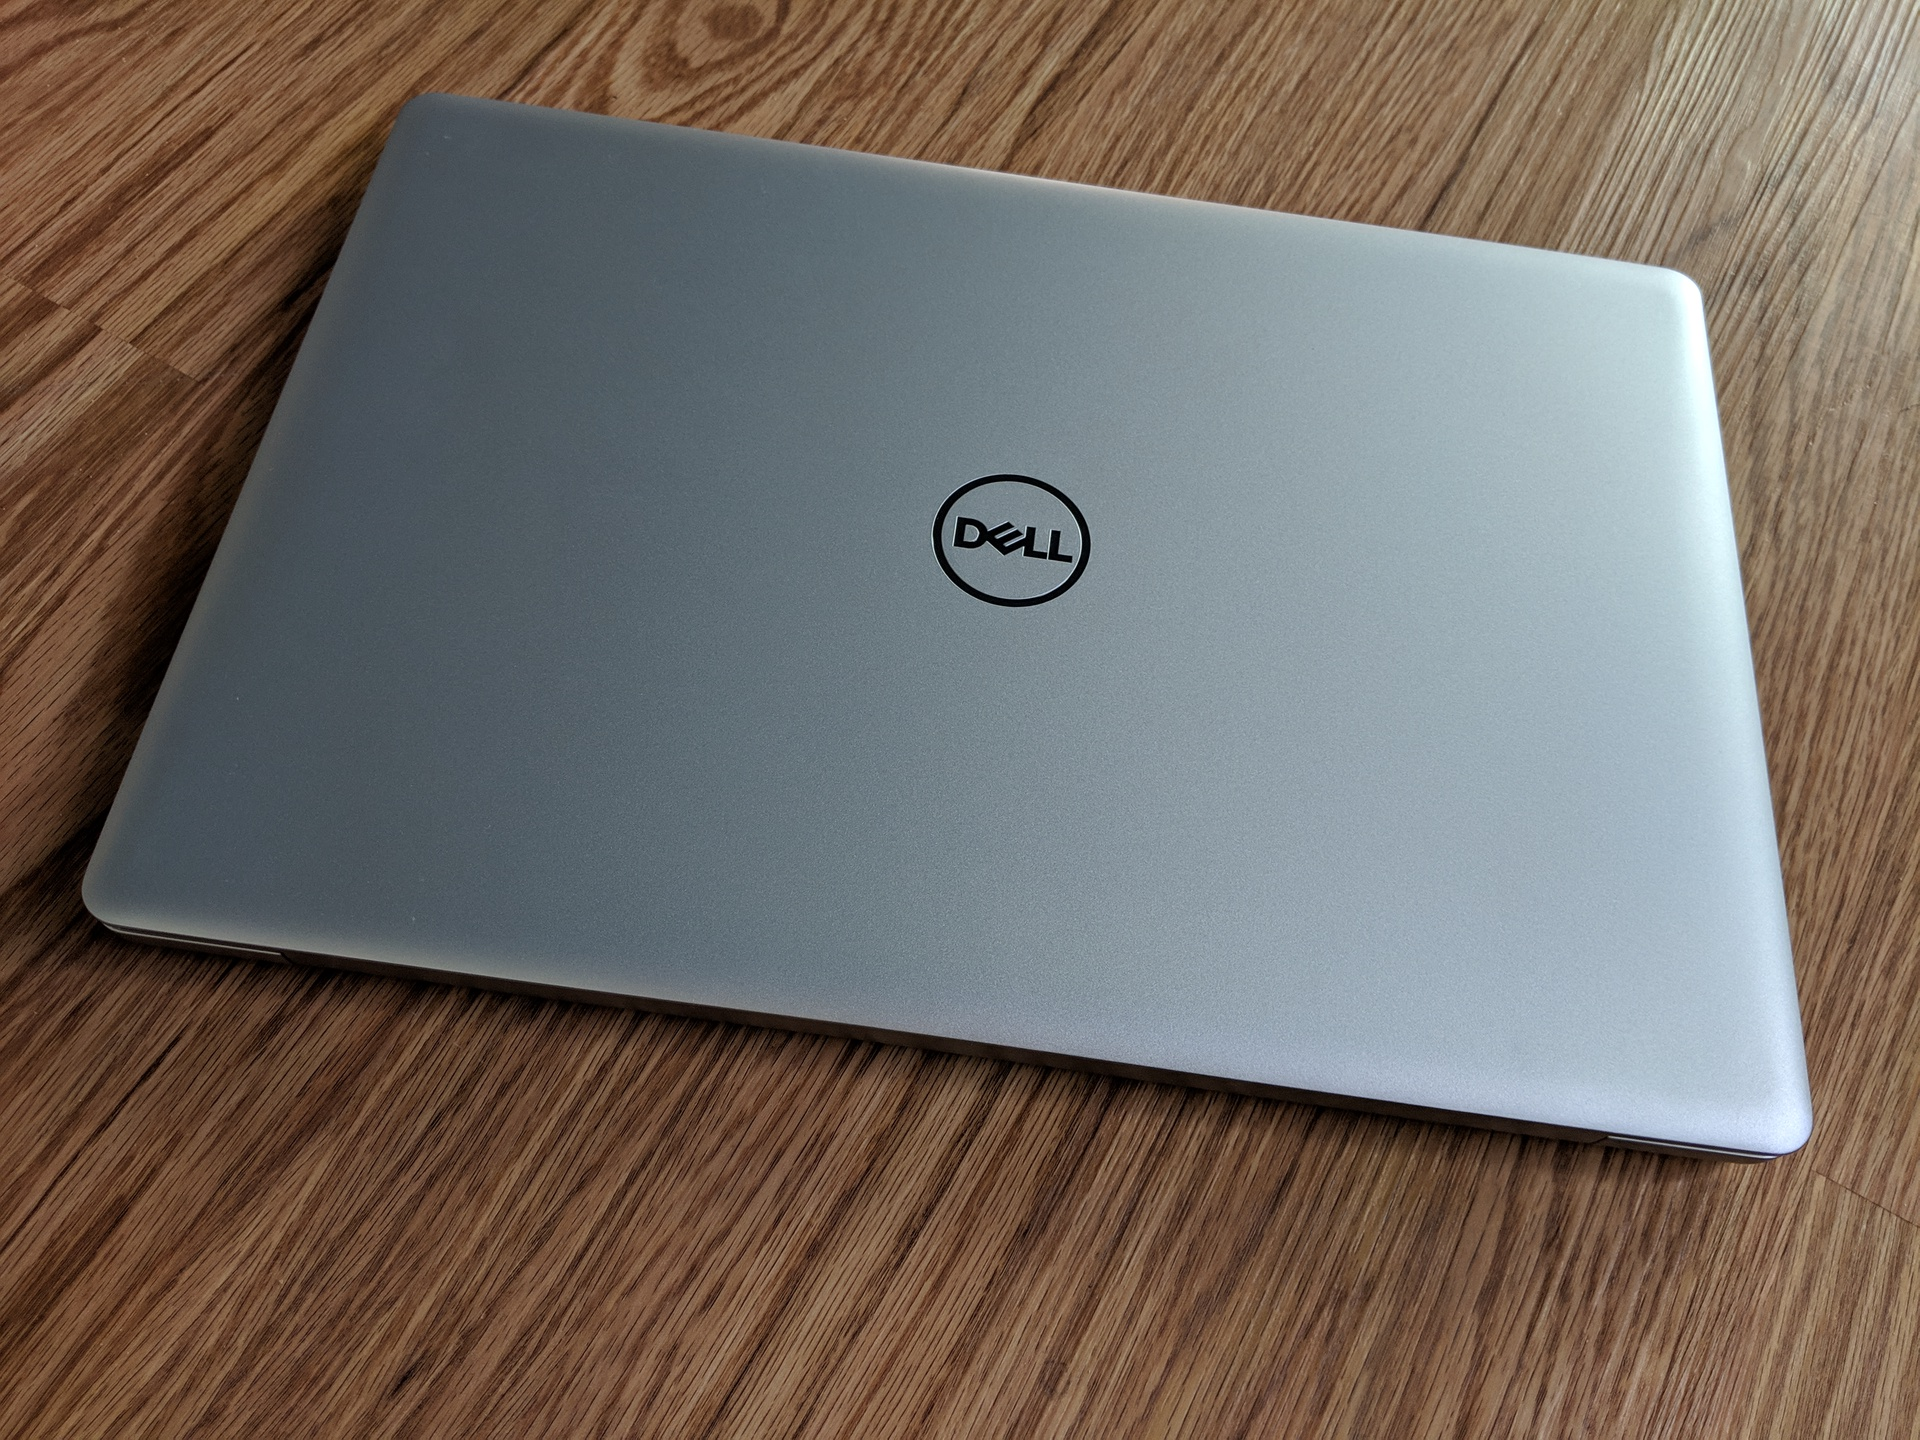 Dell Inspiron i5575-A217SLV-PUS Laptop Review - Dong Knows Tech